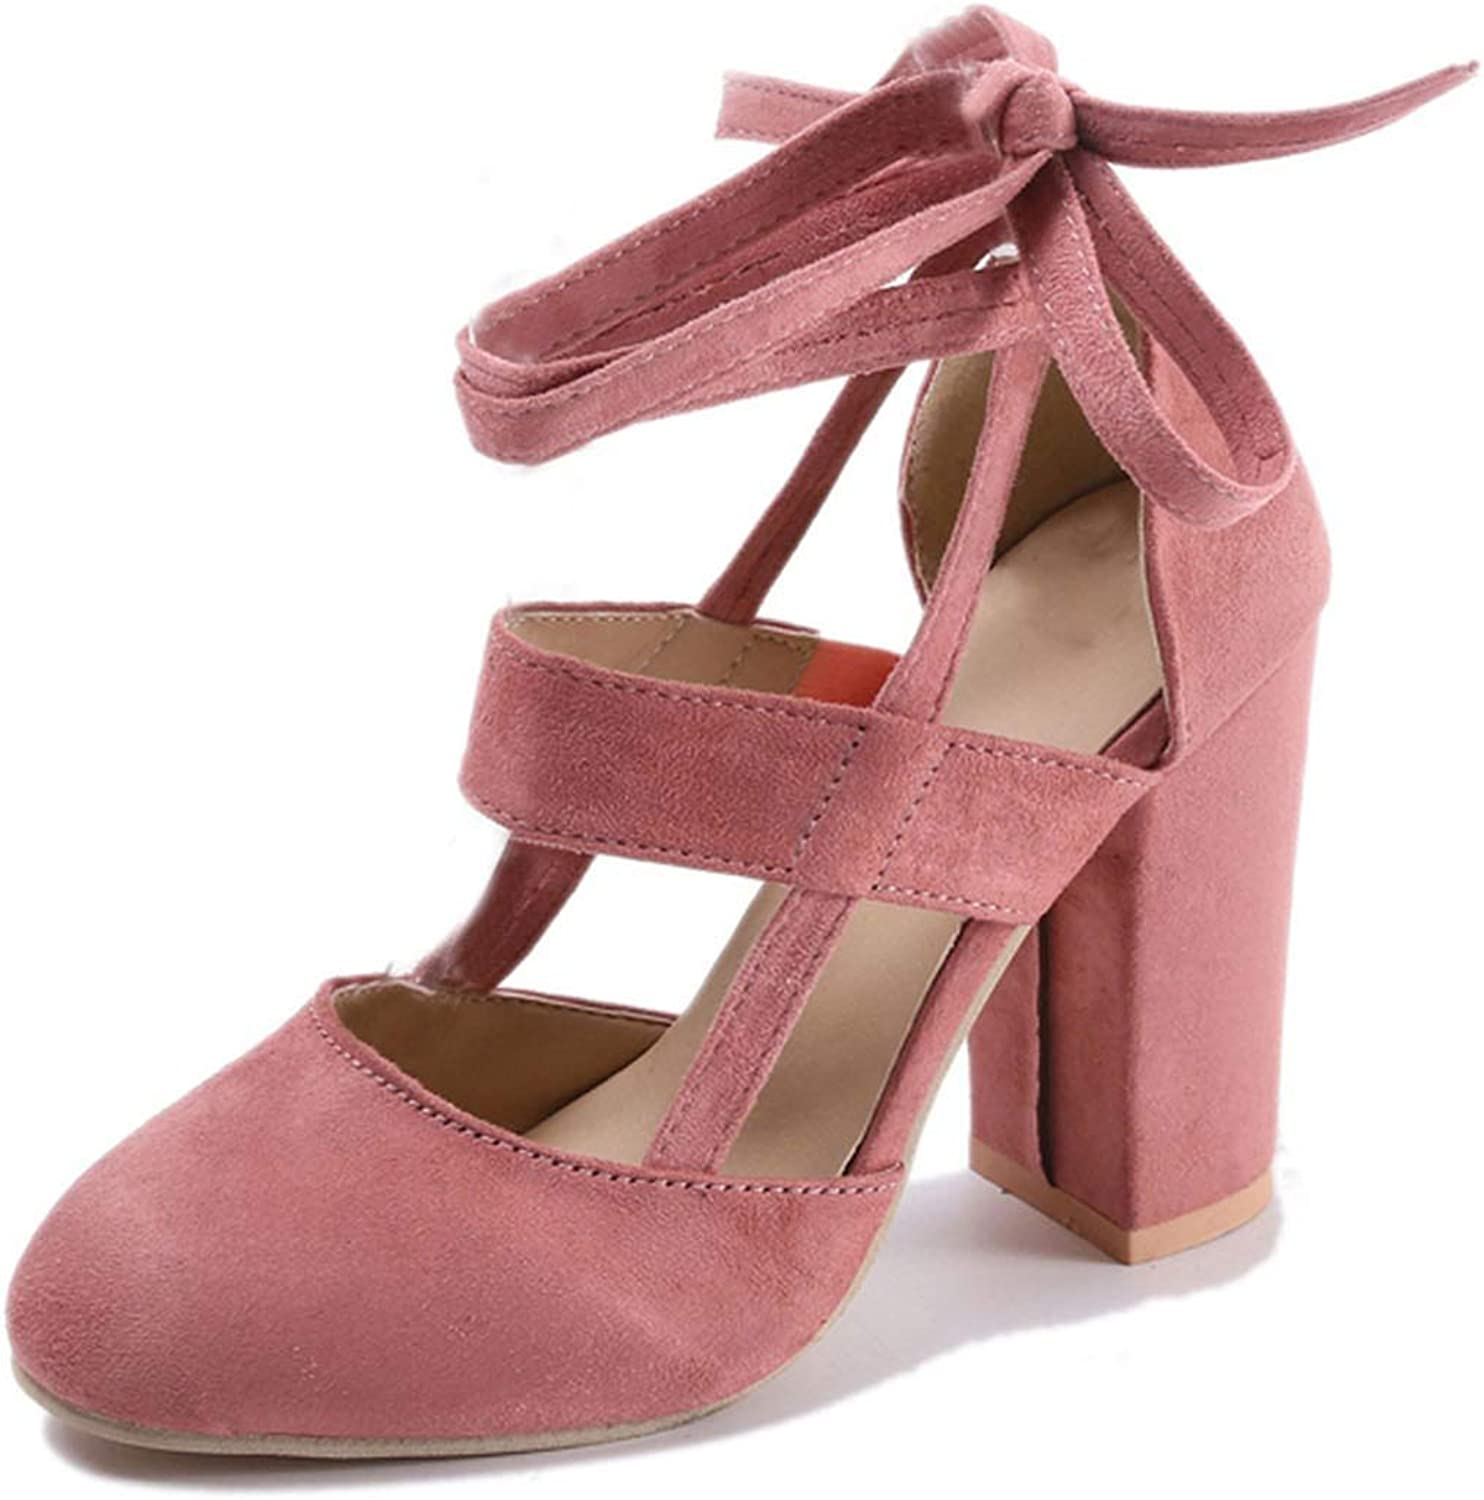 Monica's house Plus Size Female Ankle Strap High Heels shoes Thick Heel for Women Party Wedding,Pink,10